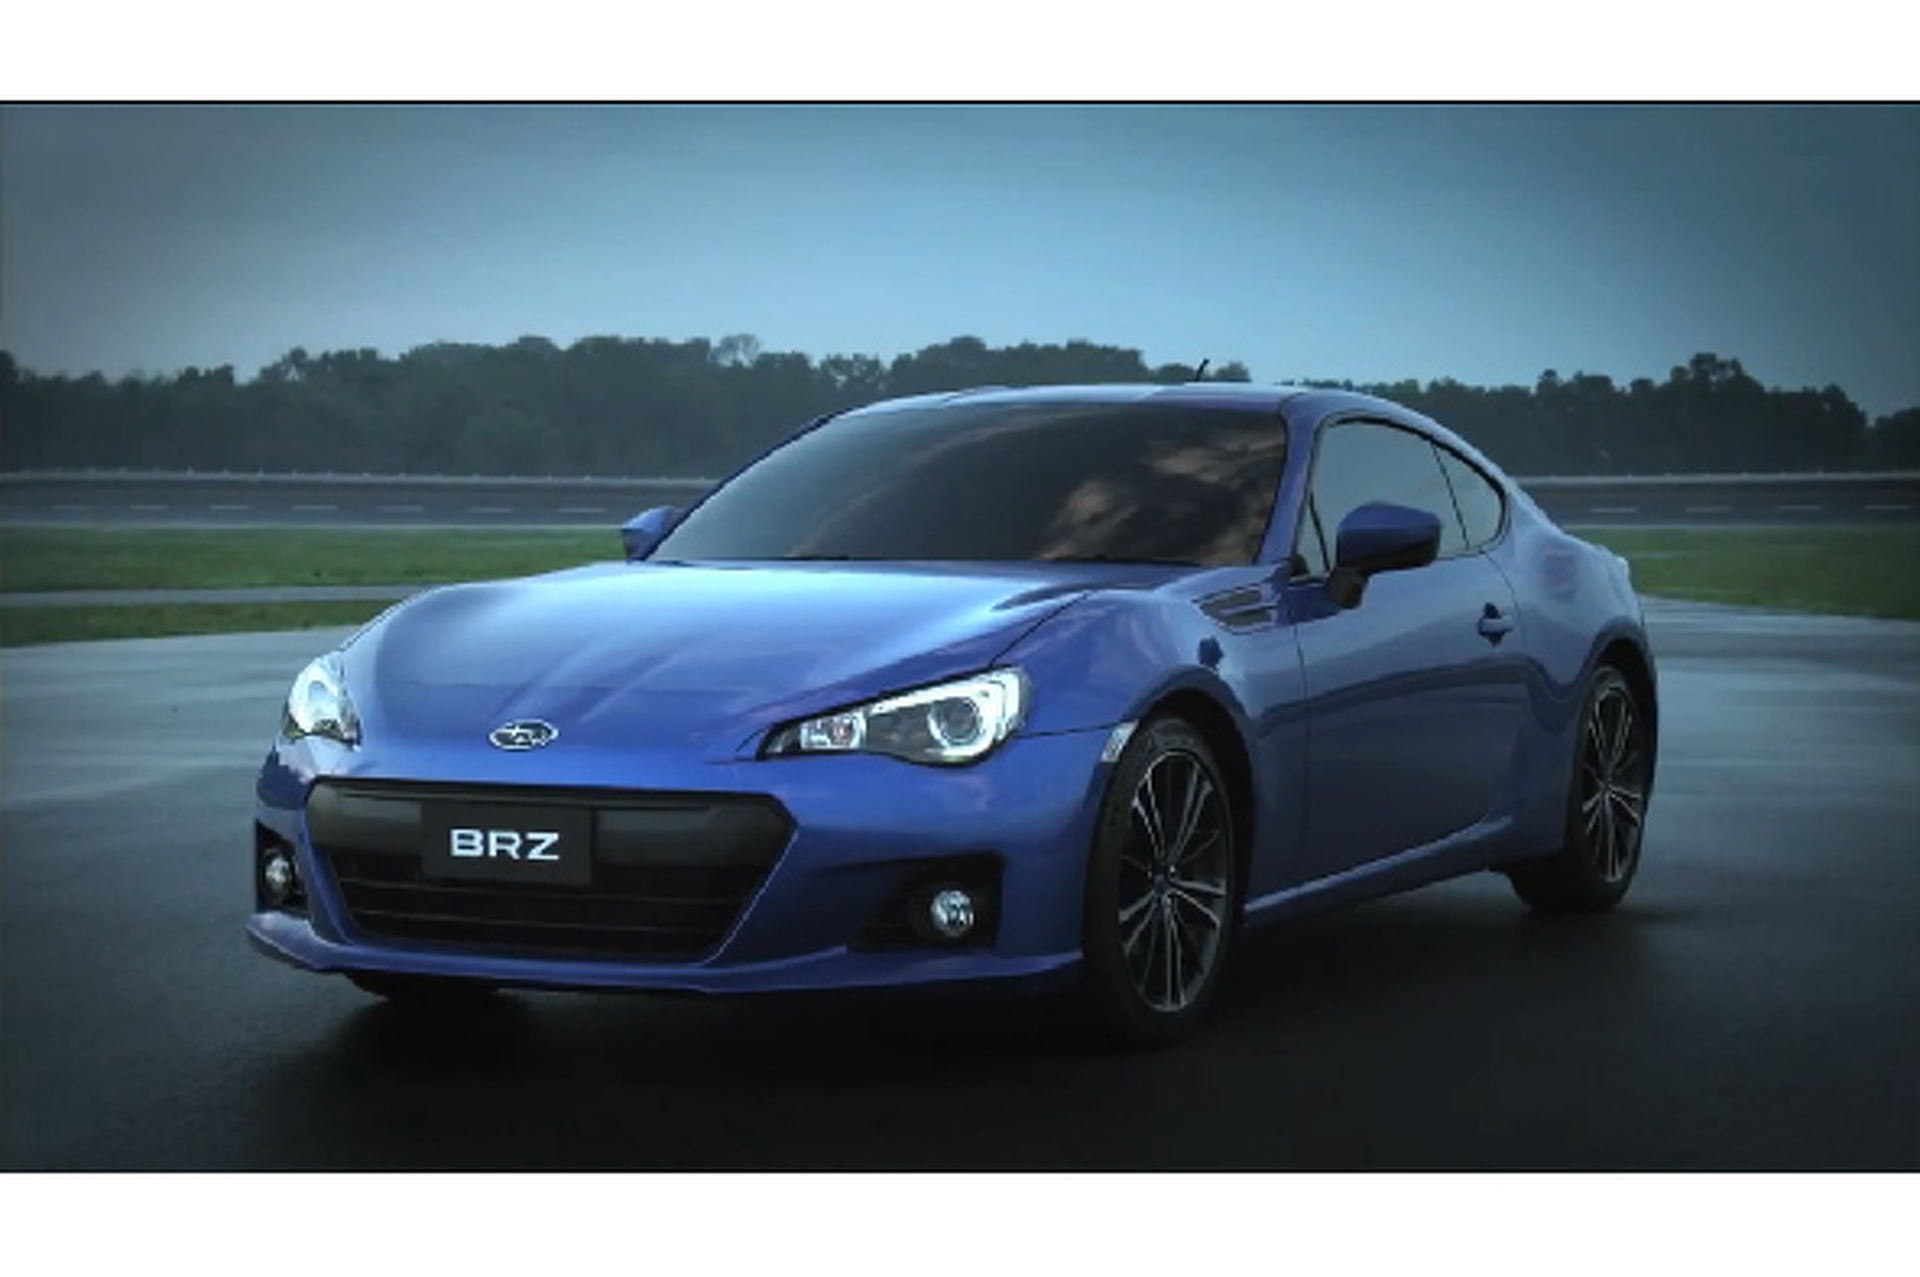 Video: Behind the Curtain-the Development of the Subaru BRZ